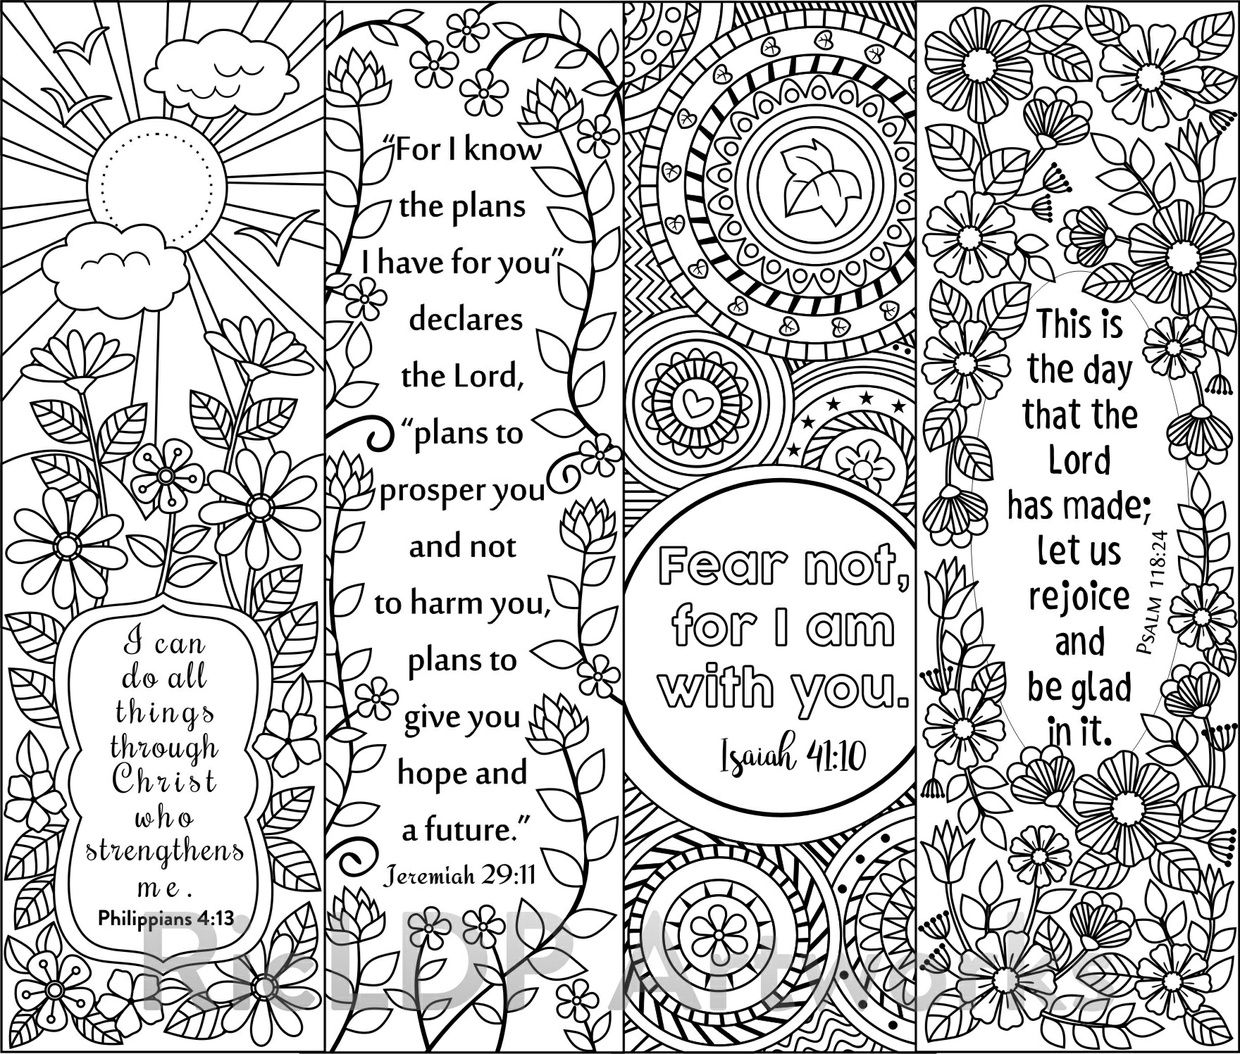 8 Bible Verse Coloring Bookmarks Coloring Bookmarks Bible Verse Coloring Page Bible Coloring Pages